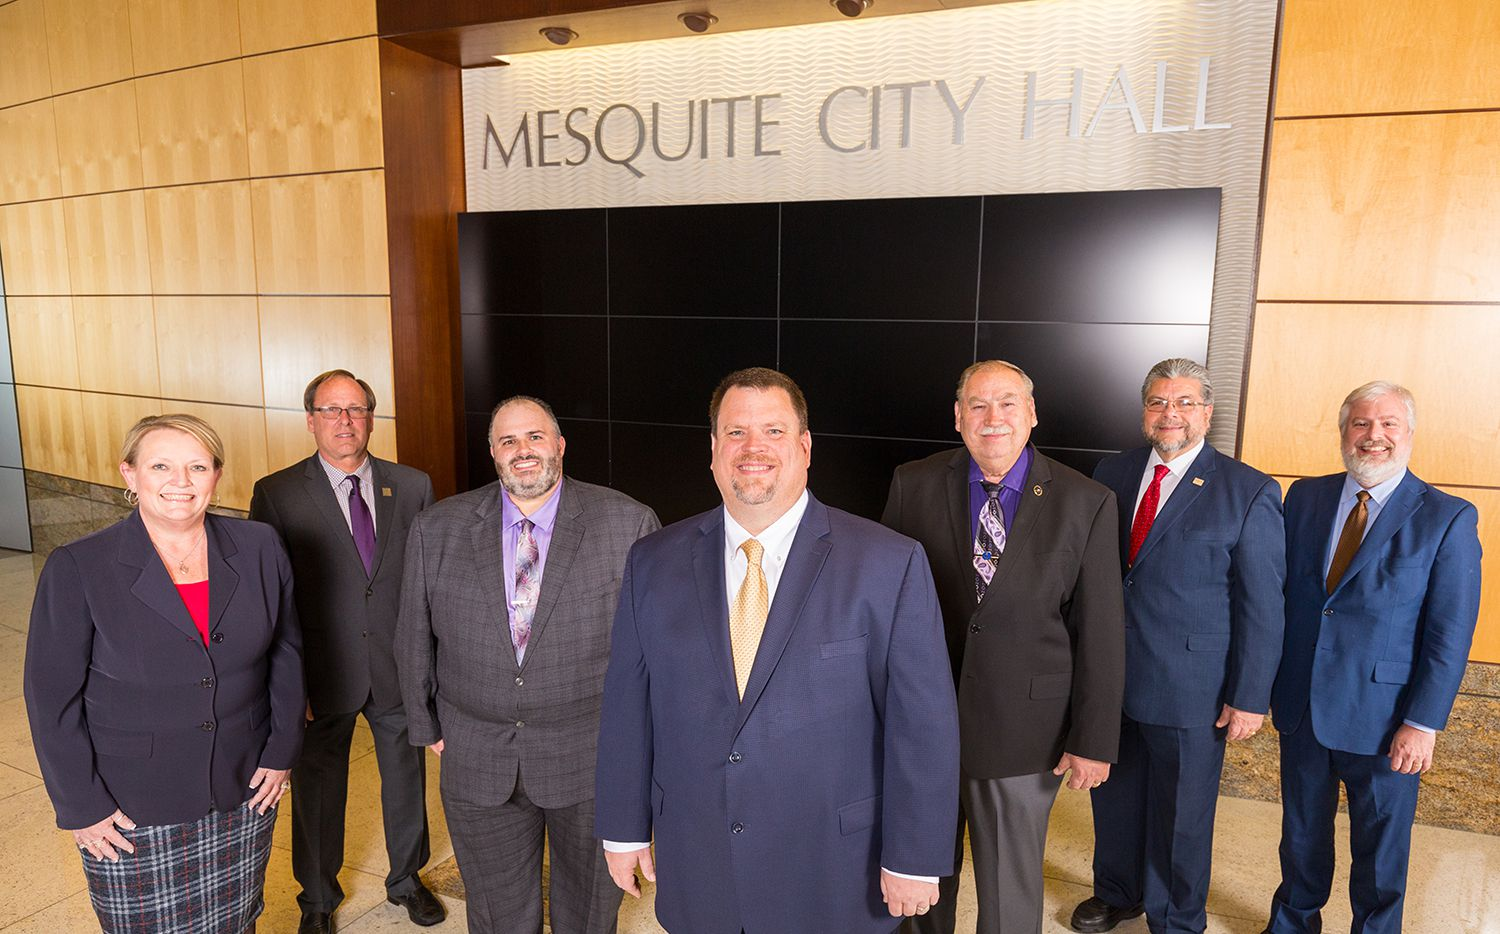 Mesquite's current city council stands inside City Hall. Members are Sherry Wisdom (District 1), Tandy Boroughs (District 4), Kenny Green (District 2), Mayor Bruce Archer, B.W. Smith (District 5), Daniel Aleman (District 5) and Robert Miklos (District 3) (Courtesy city of Mesquite).